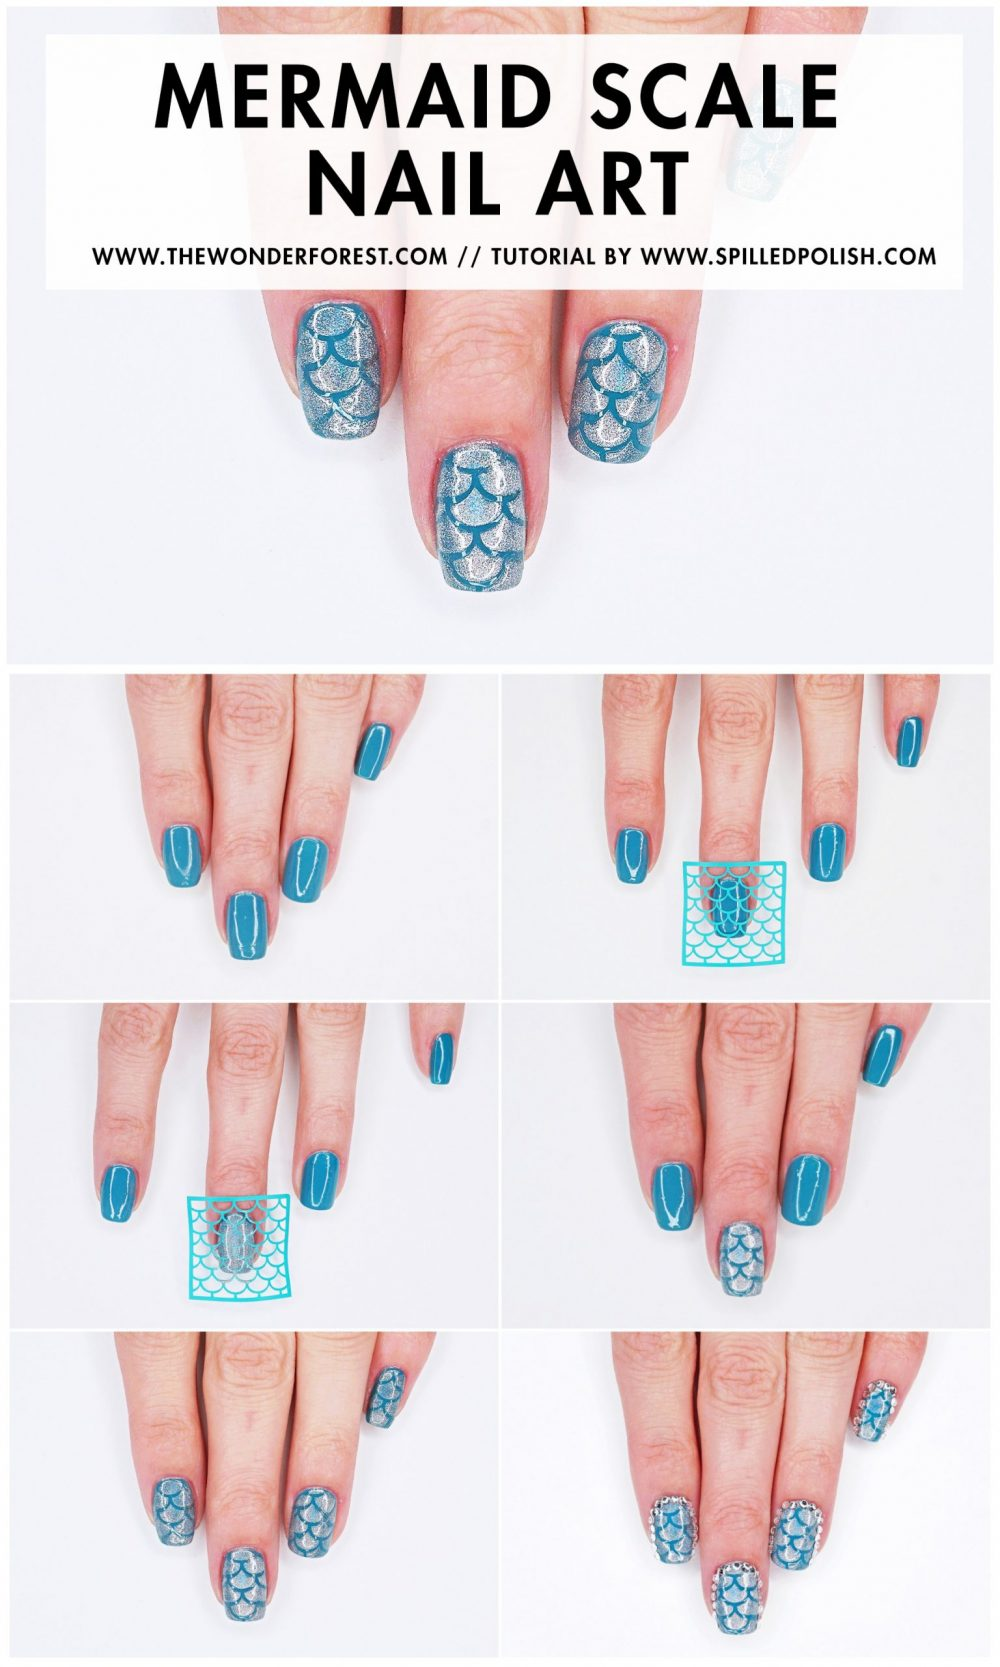 Mermaid Scale Nail Art Tutorial